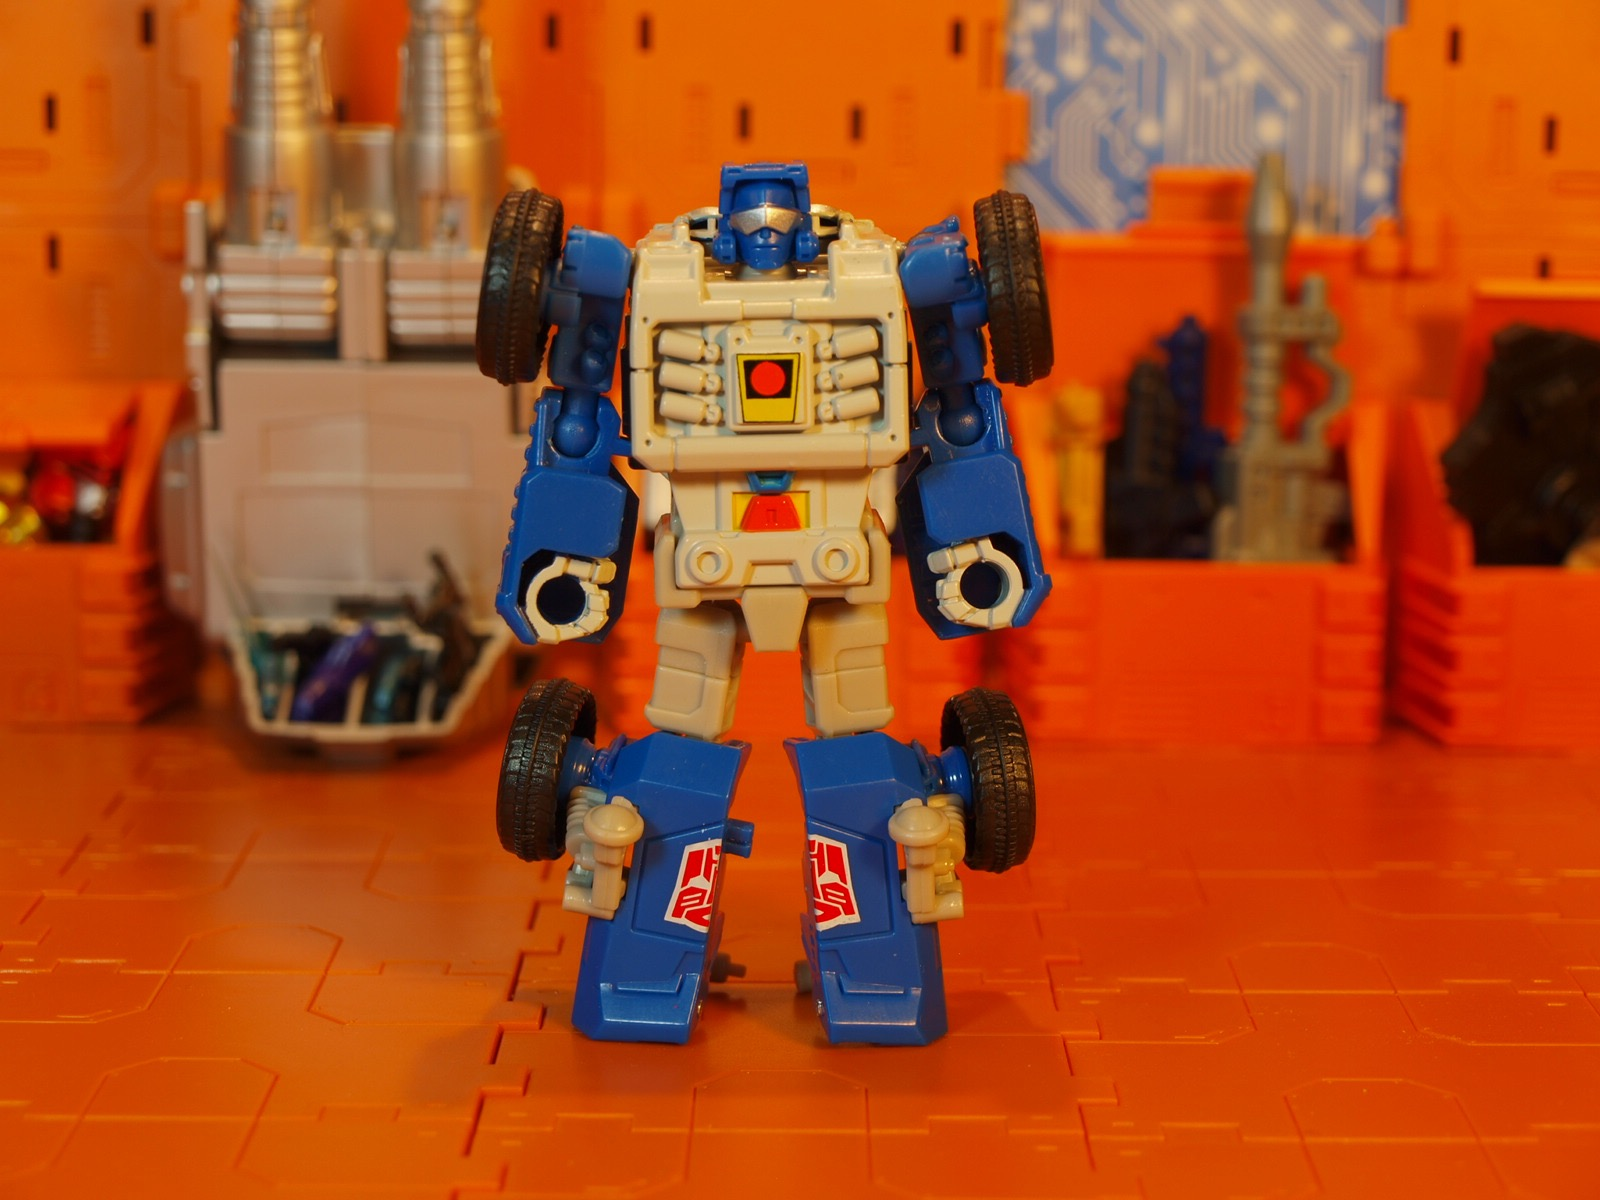 Beachcomber robot mode